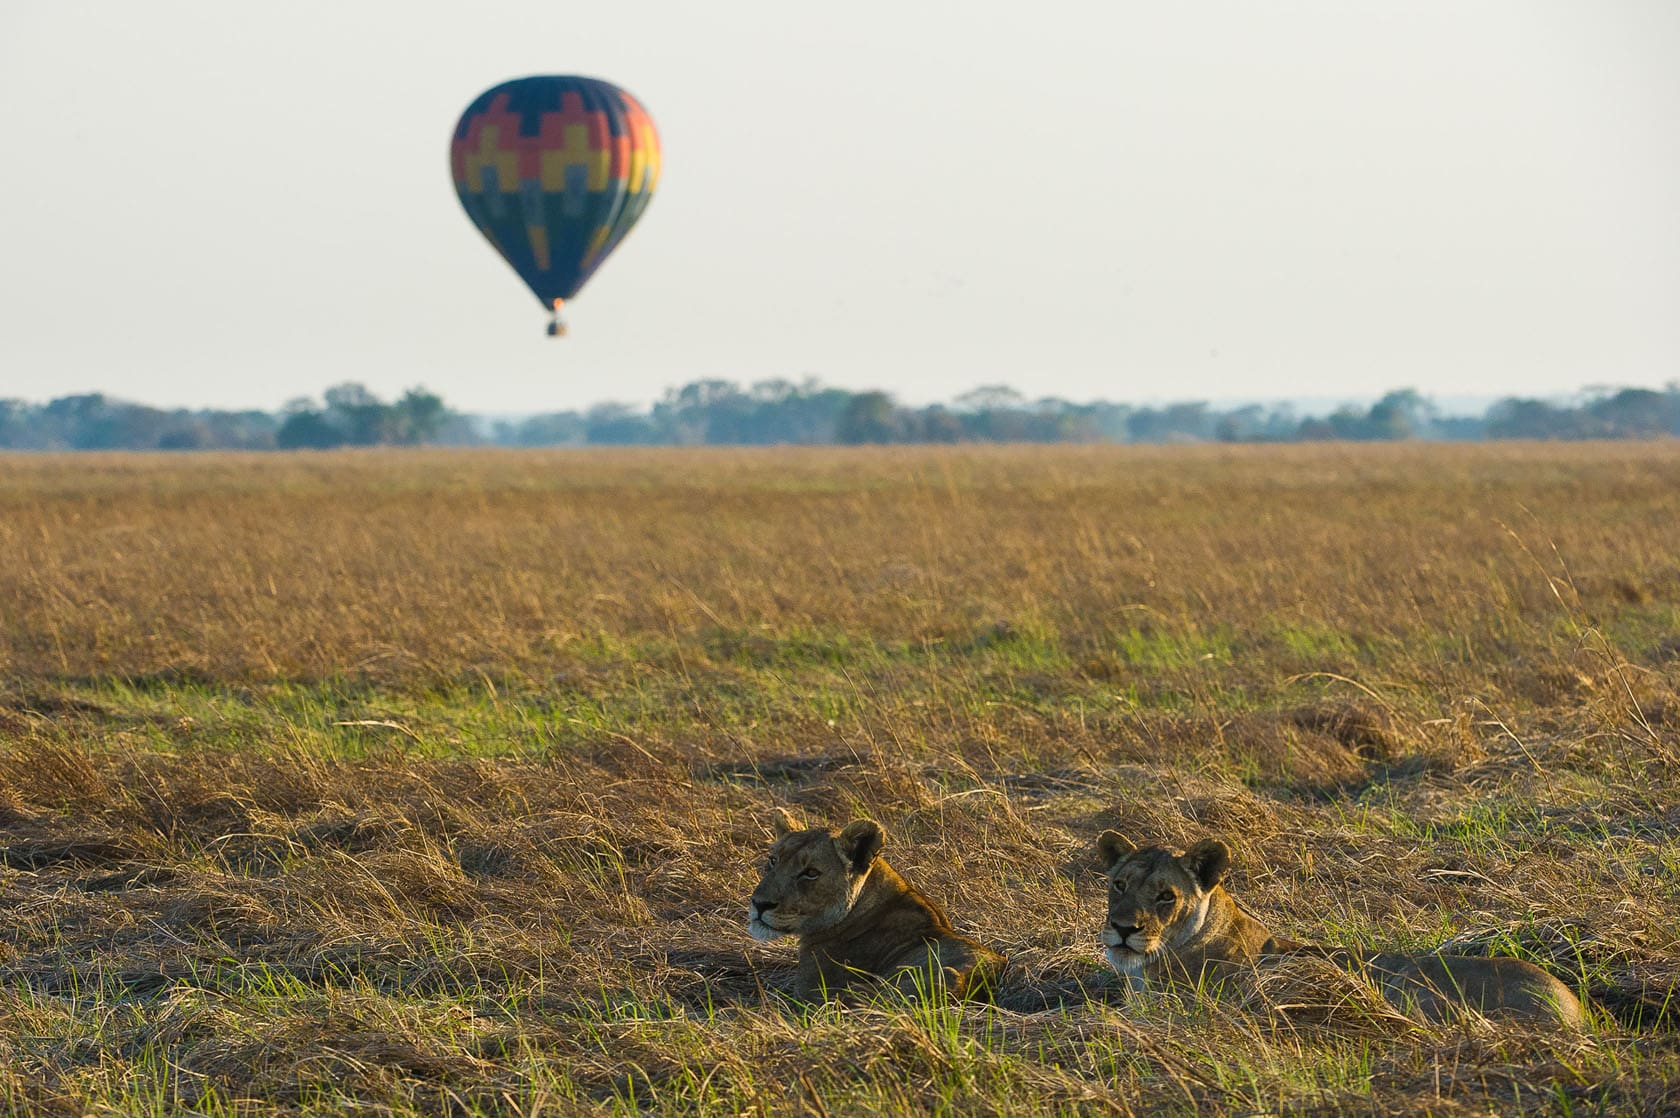 Hot air ballooning in Kafue National Park in Zambia